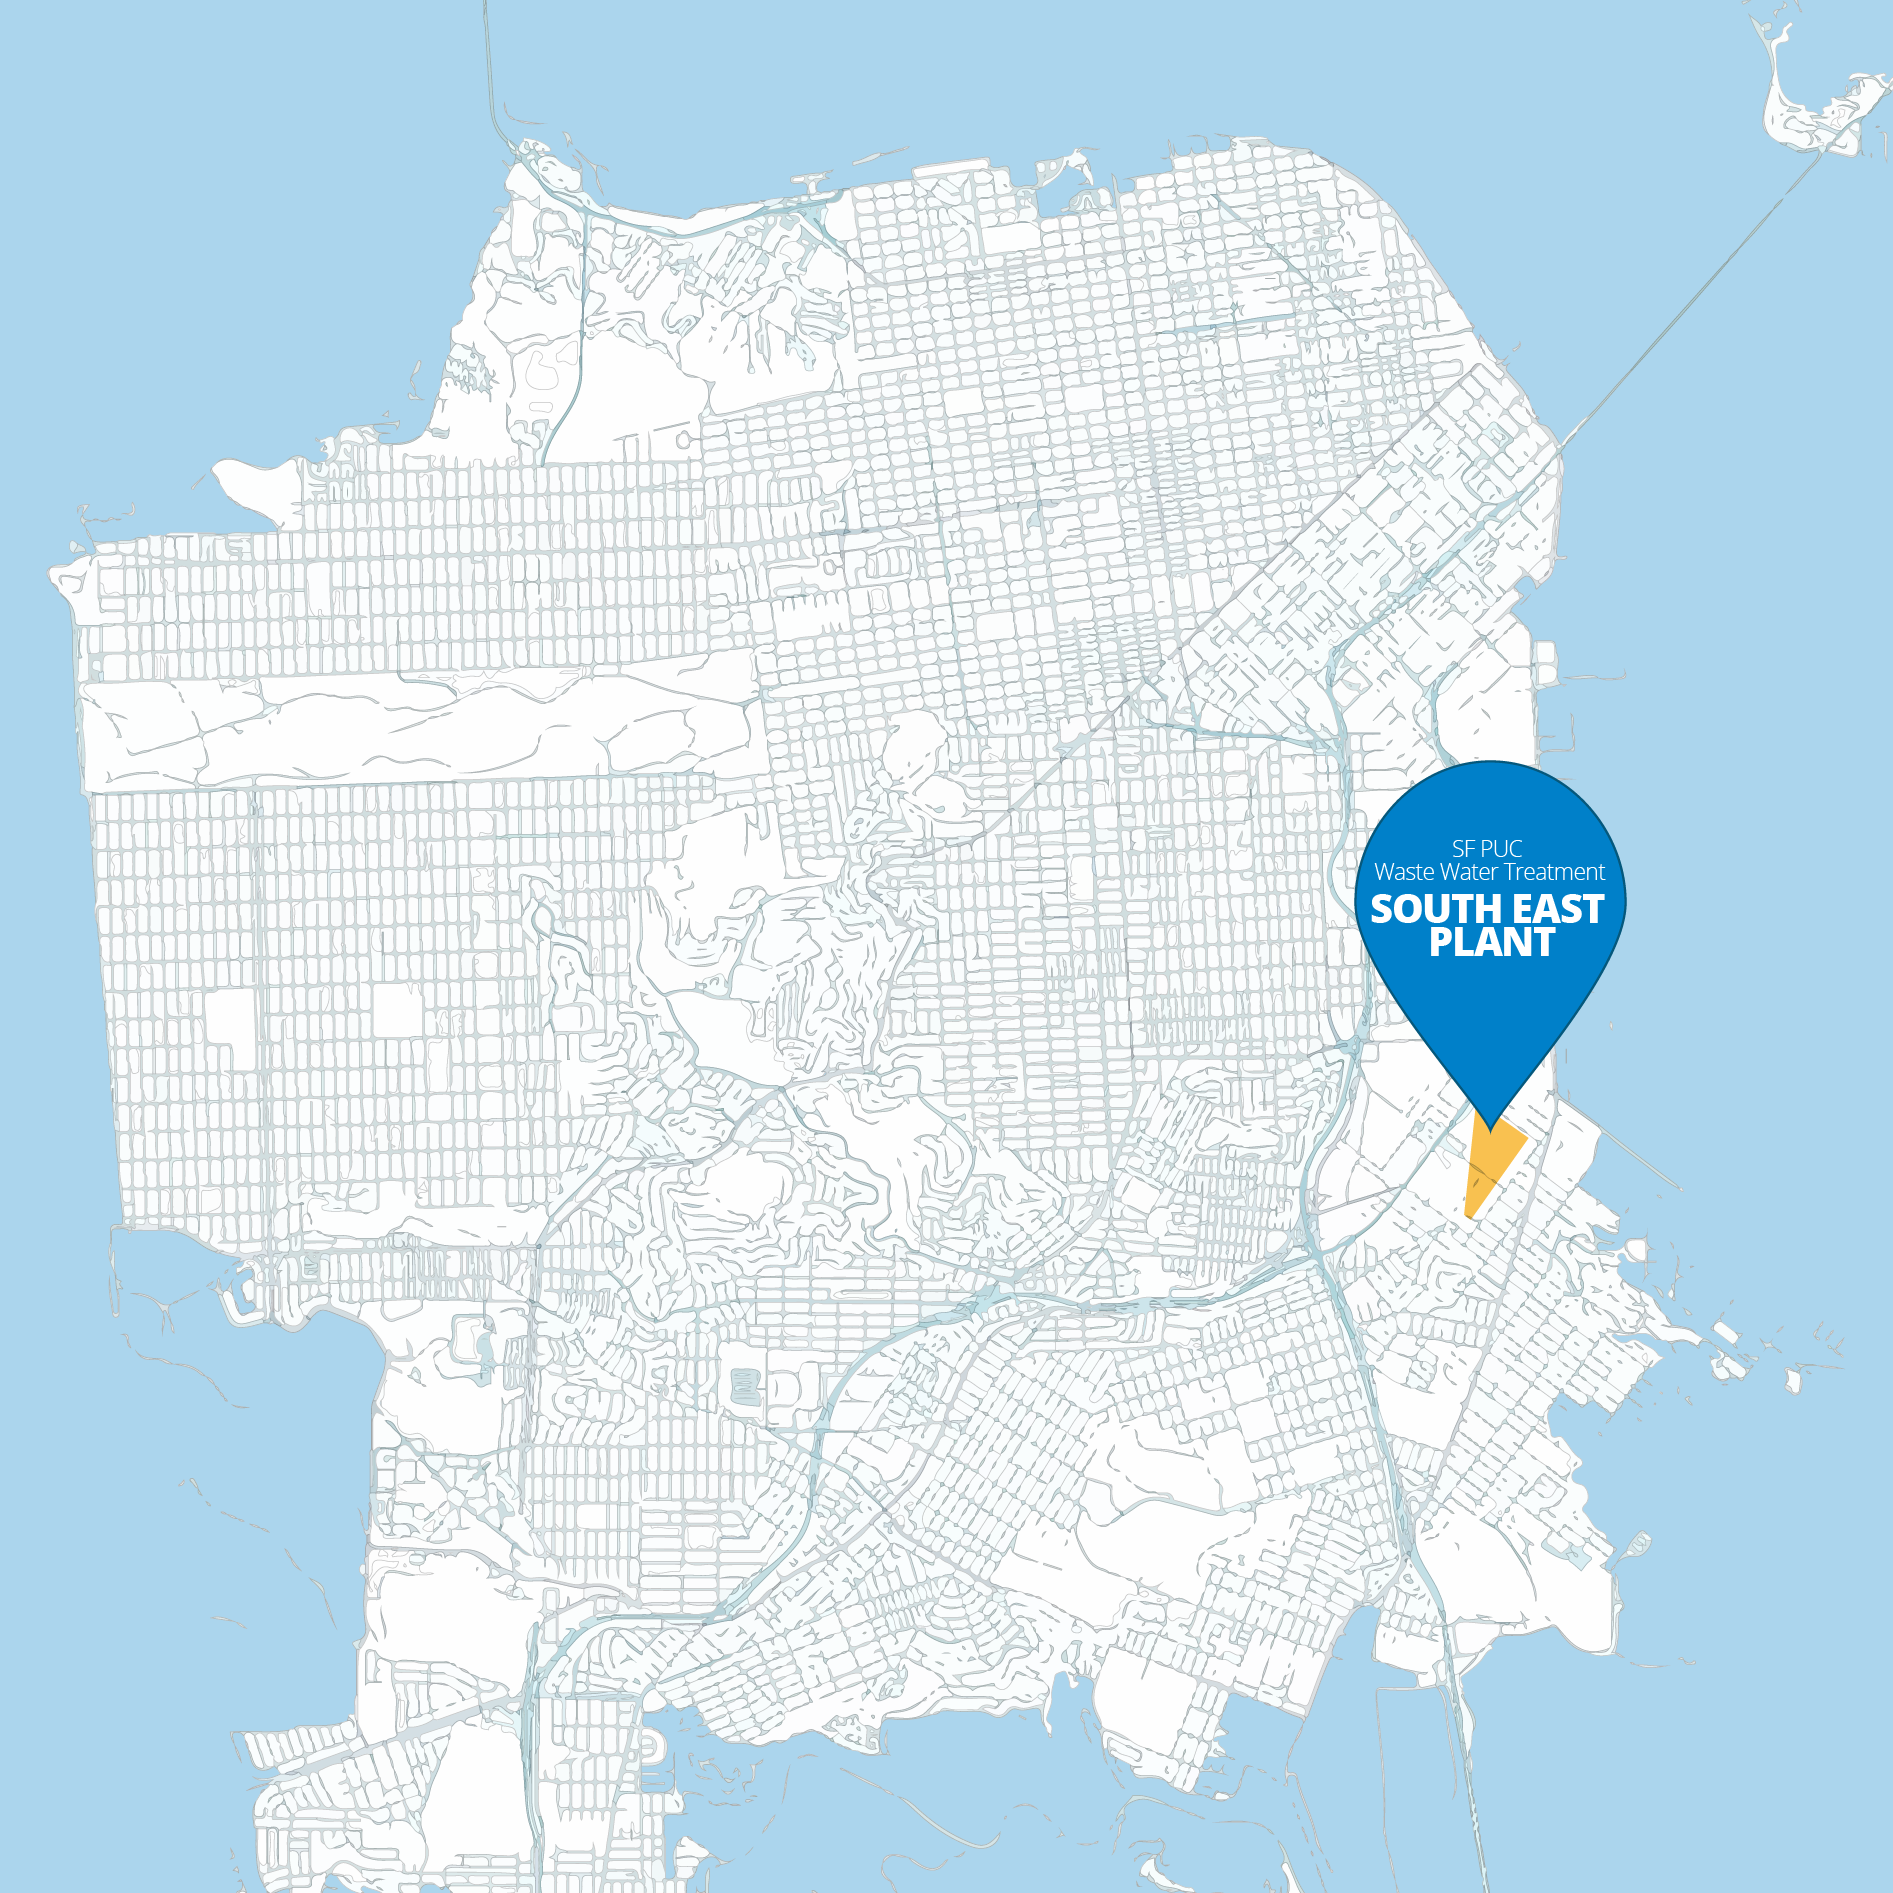 San Francisco's South East Waste Water Treatment Plant | SEP